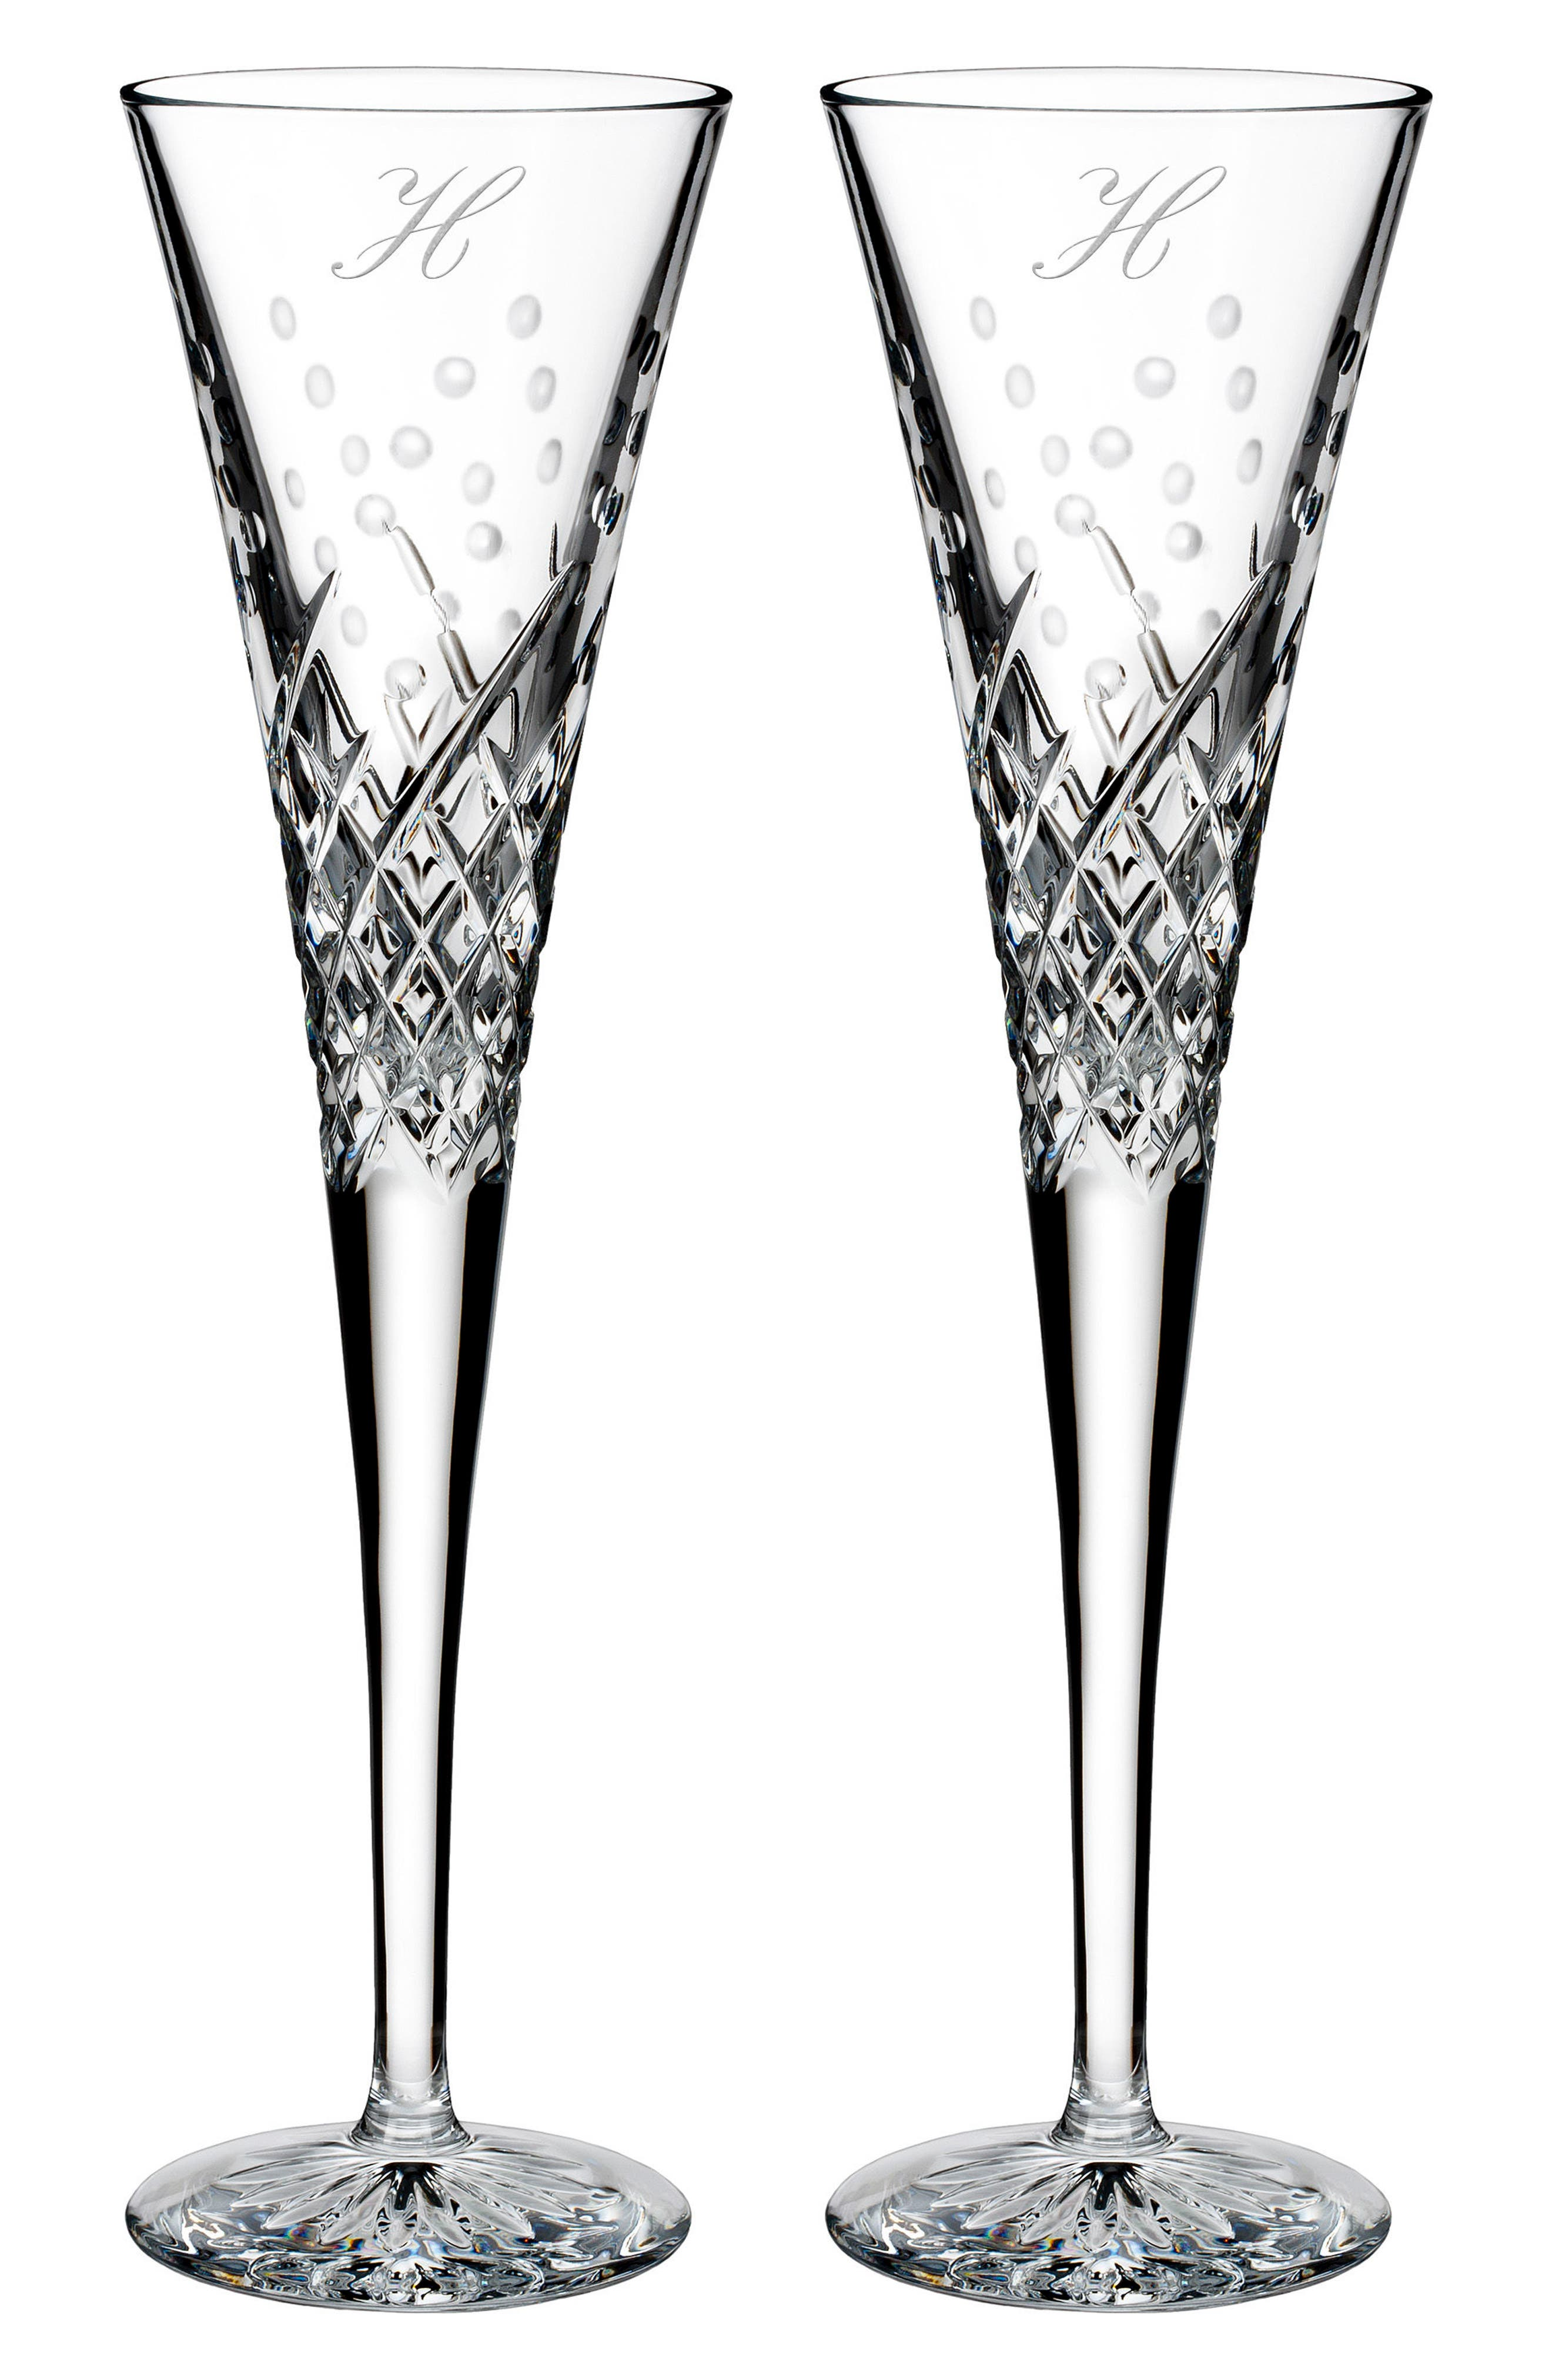 Happy Celebrations Set of 2 Monogram Lead Crystal Champagne Flutes,                         Main,                         color, CLEAR - H